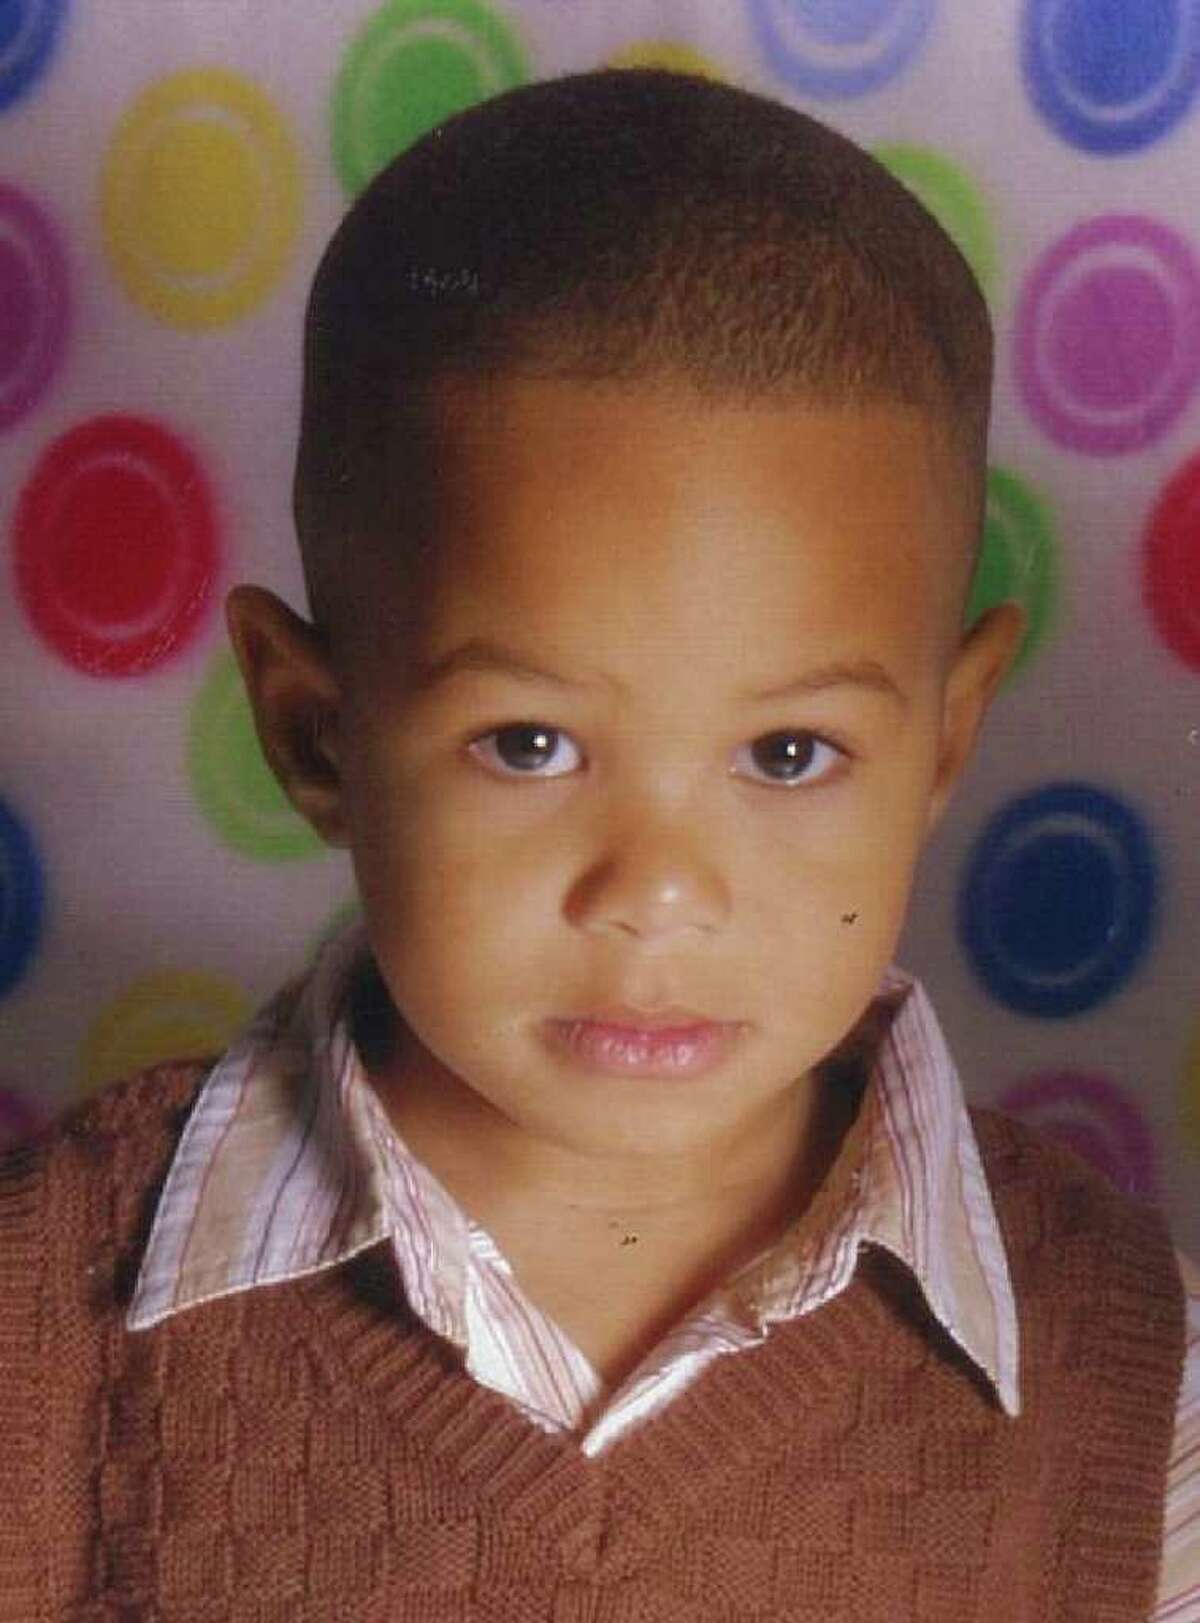 Kendrick Jackson was 3 when he vanished on April 7, 2006.